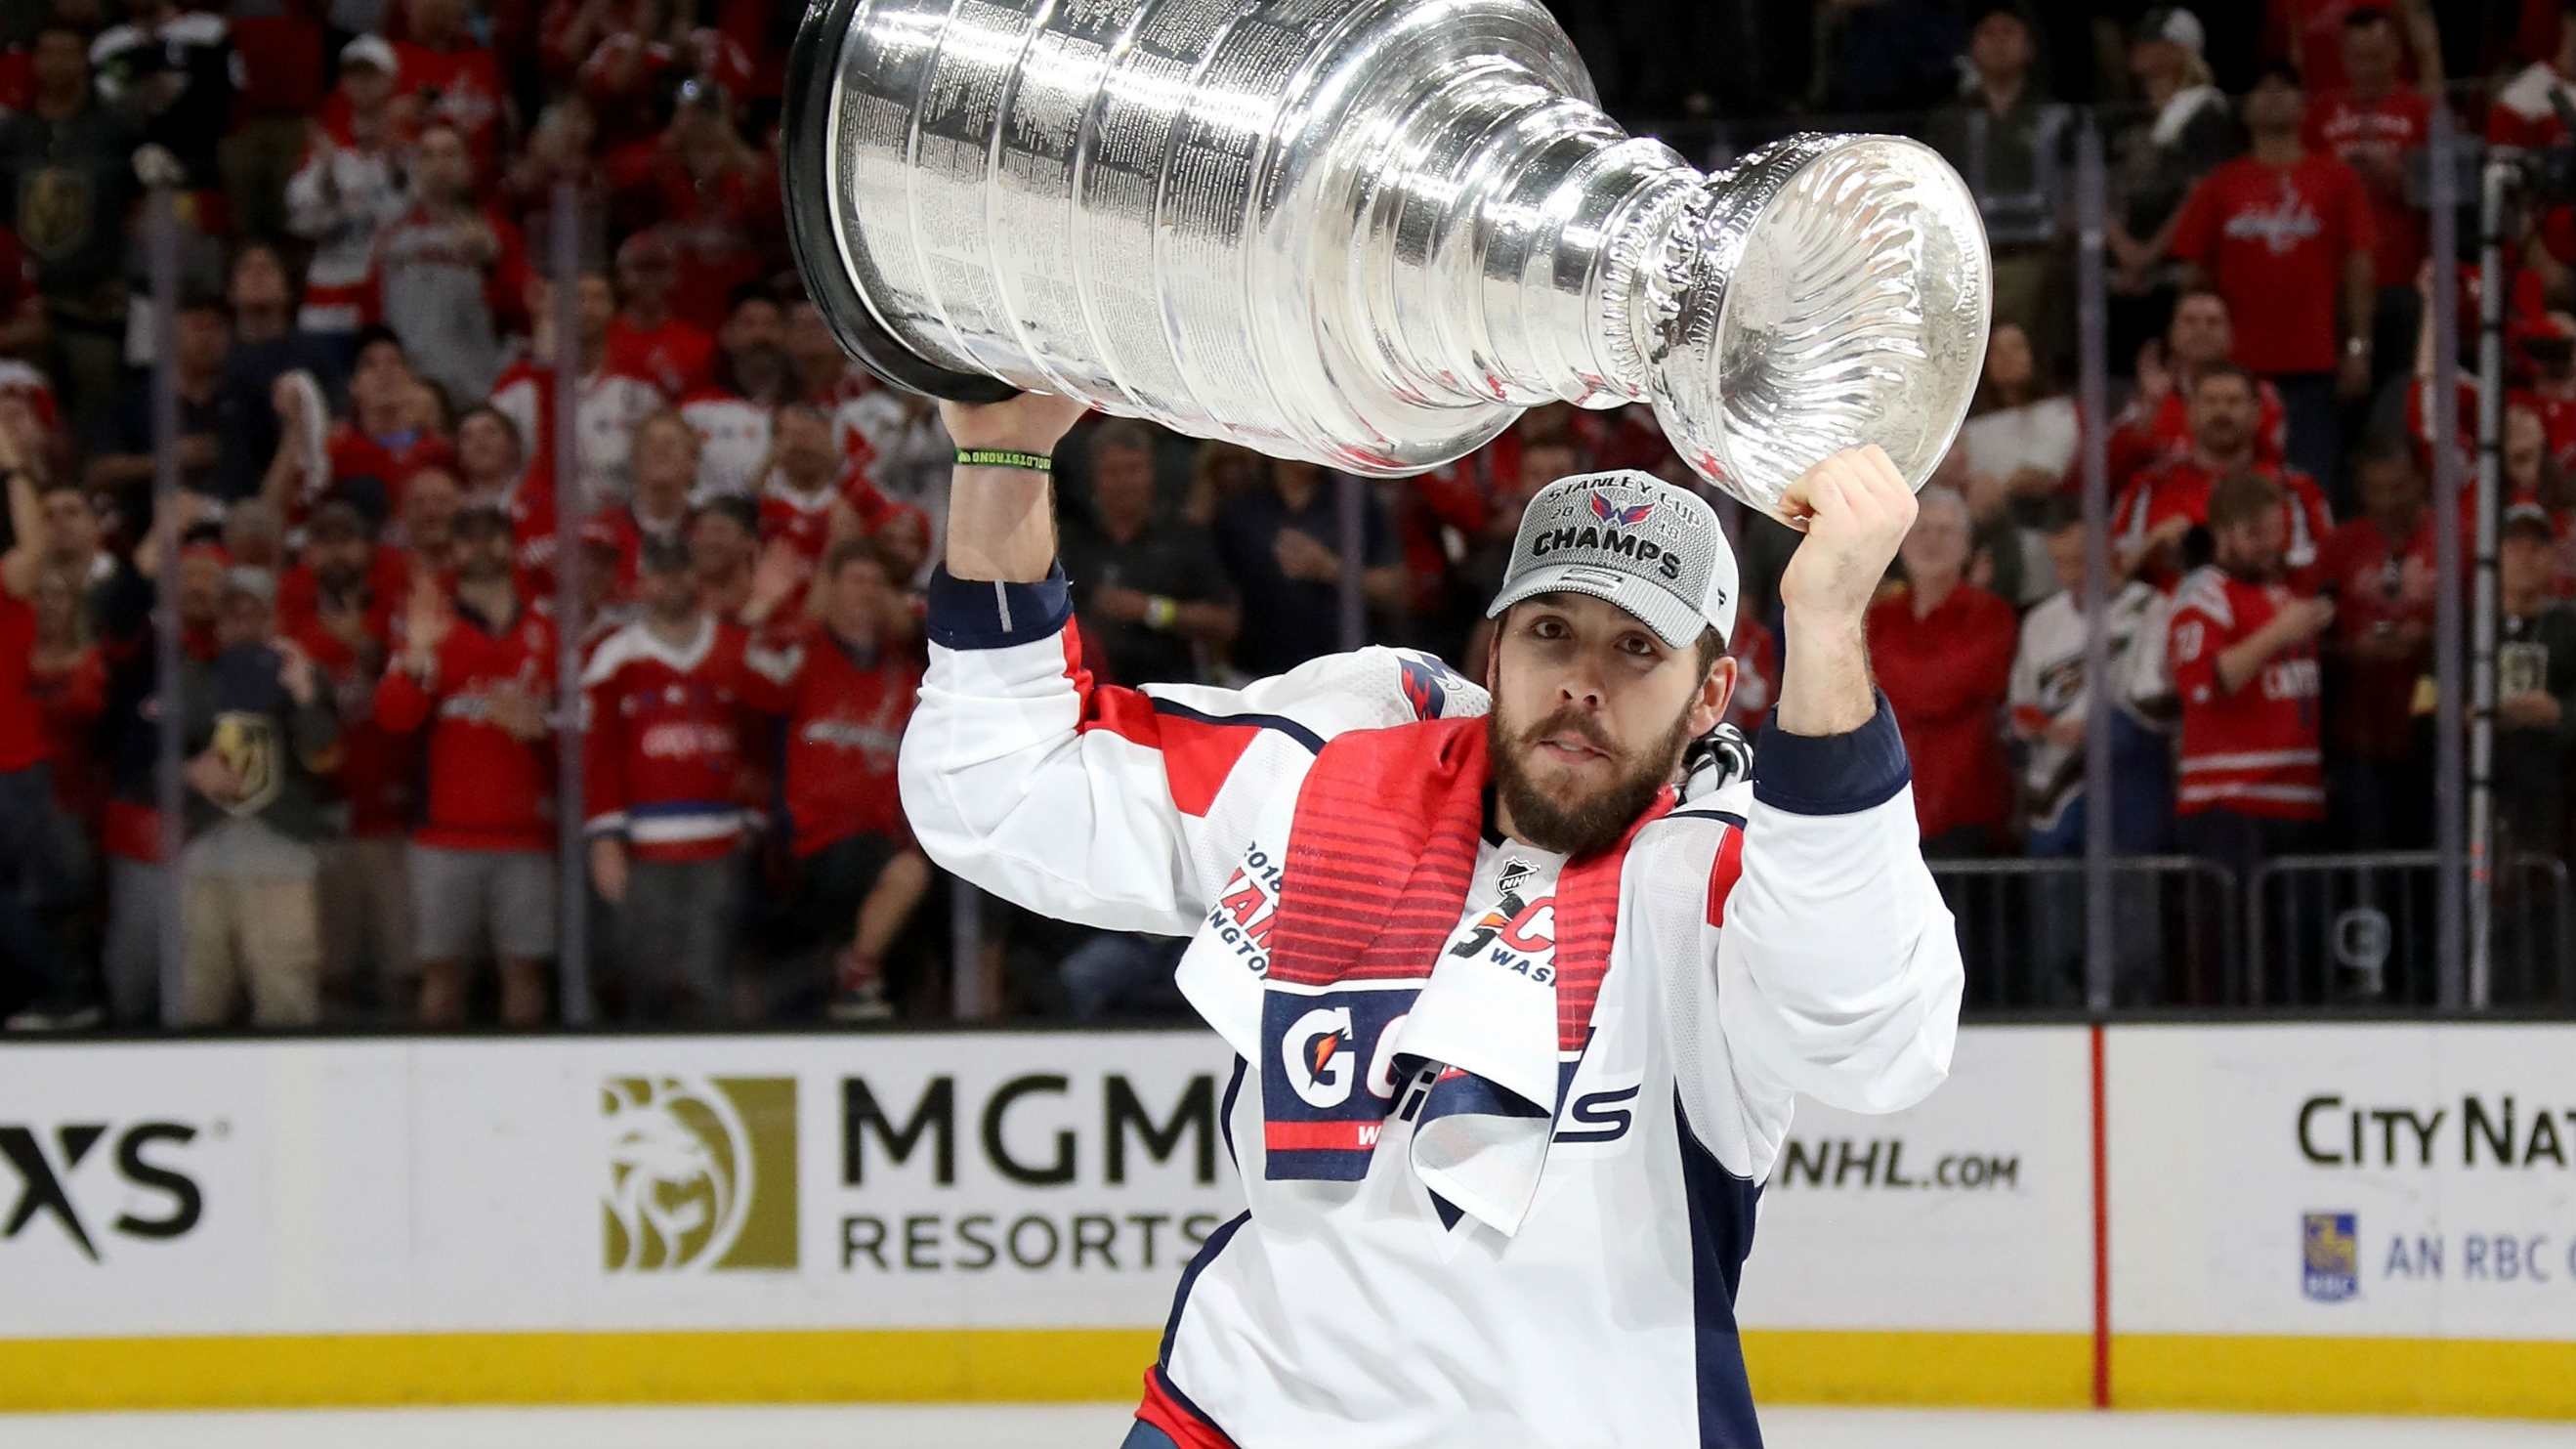 Capitals' Chandler Stephenson takes Stanley Cup to Humboldt